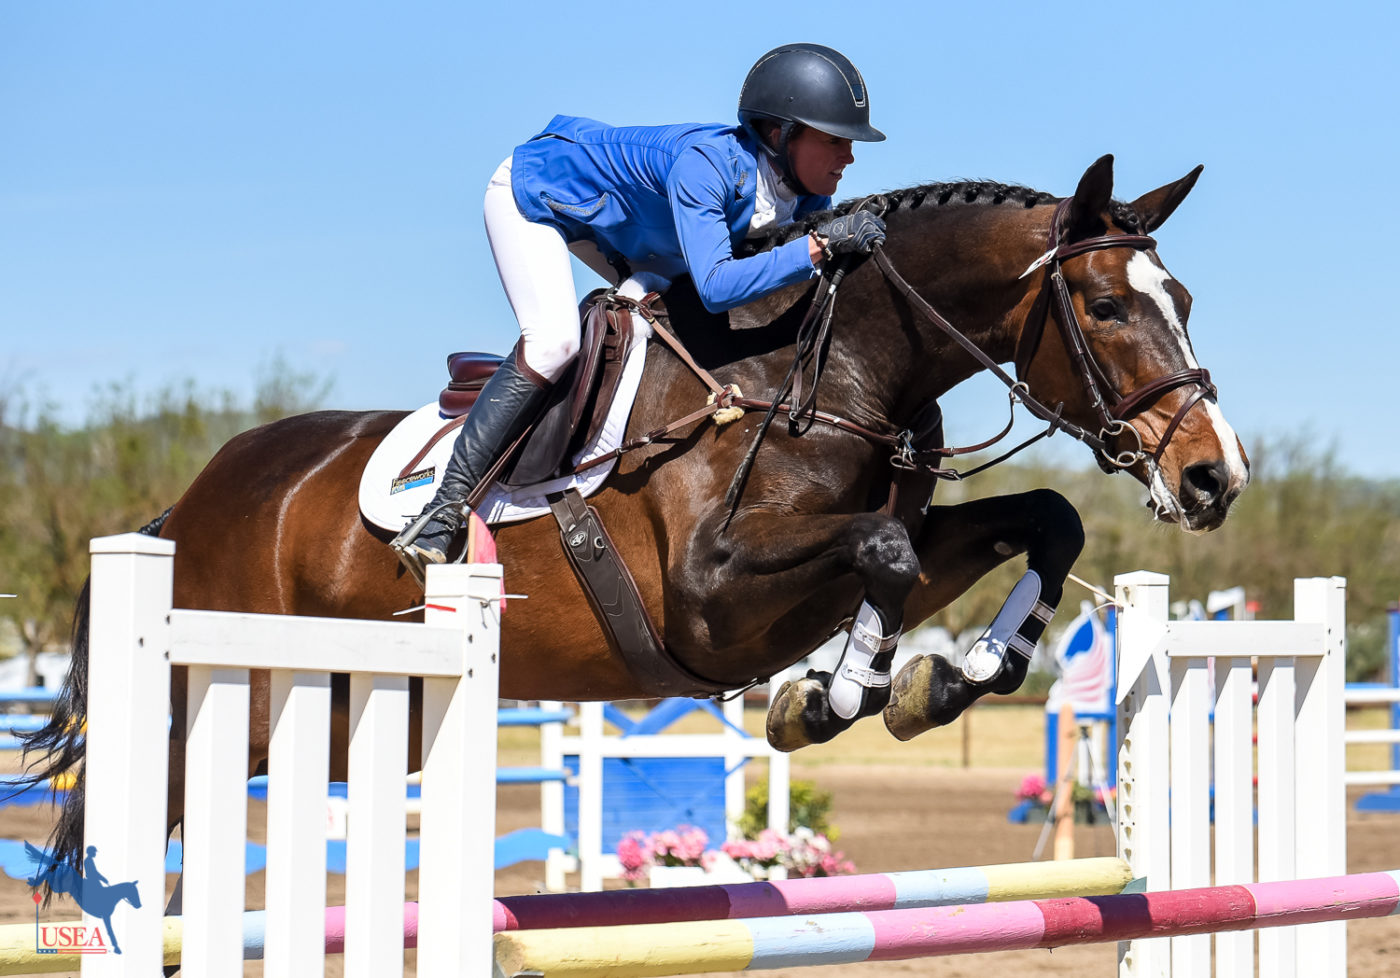 Andrea Baxter and Enfinity showing perfect form. USEA/Jessica Duffy Photo.